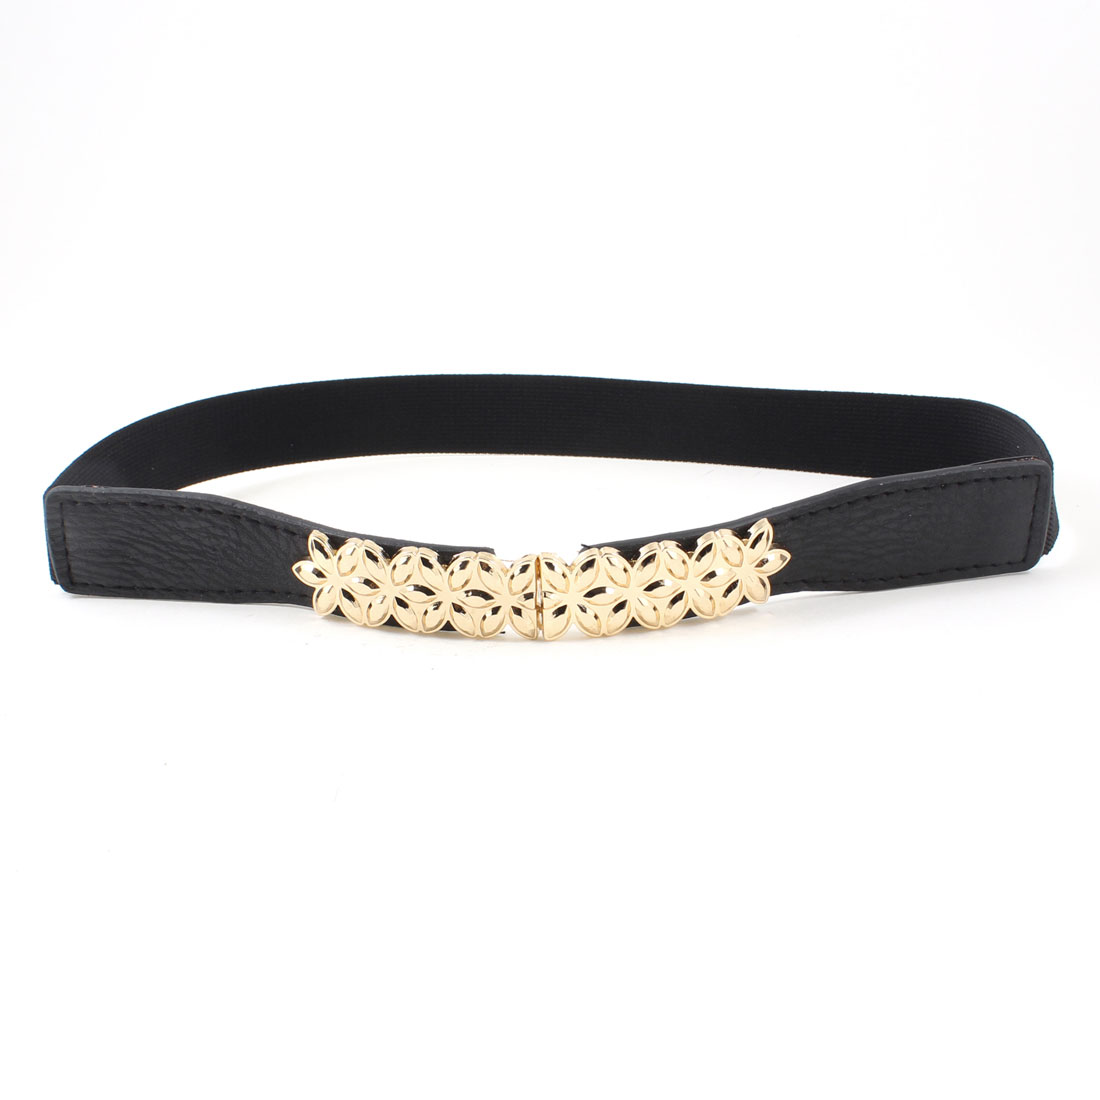 Gold Tone Metal Flower Decor Black Elastic Skinny Waist Band Belt for Women